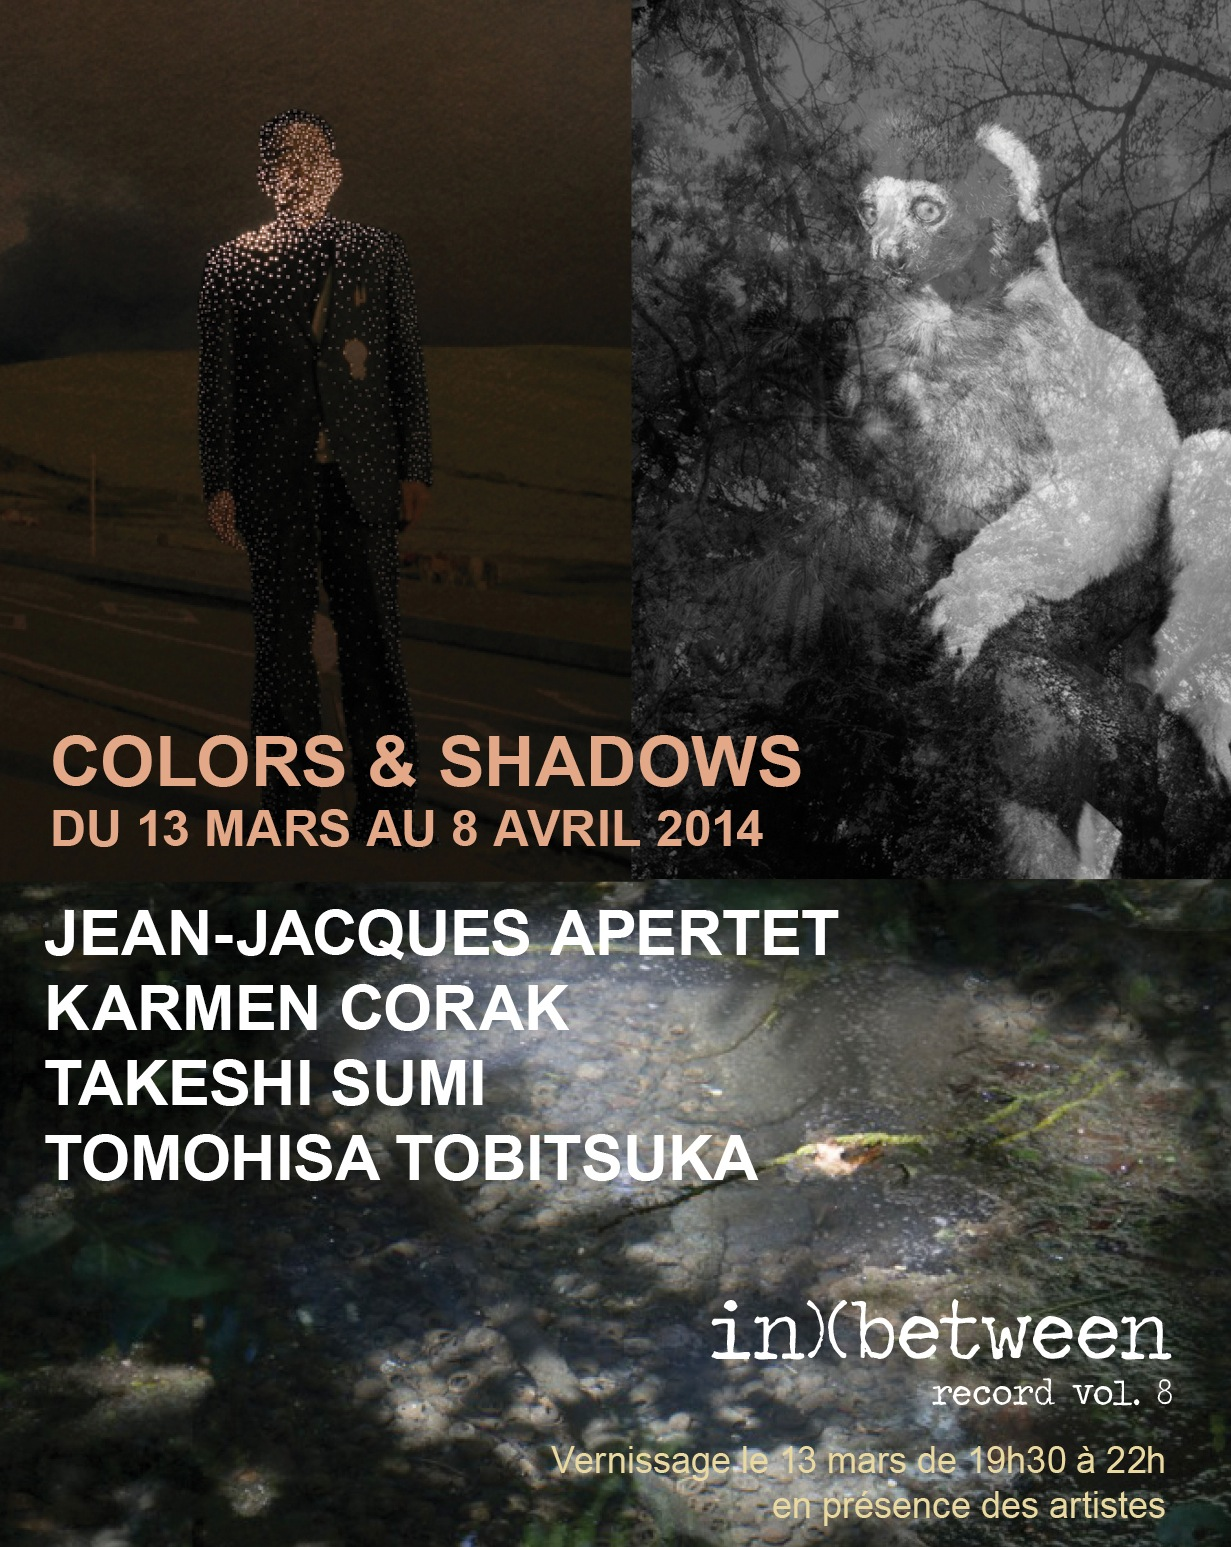 Colors and shadows_Affiche_photo1